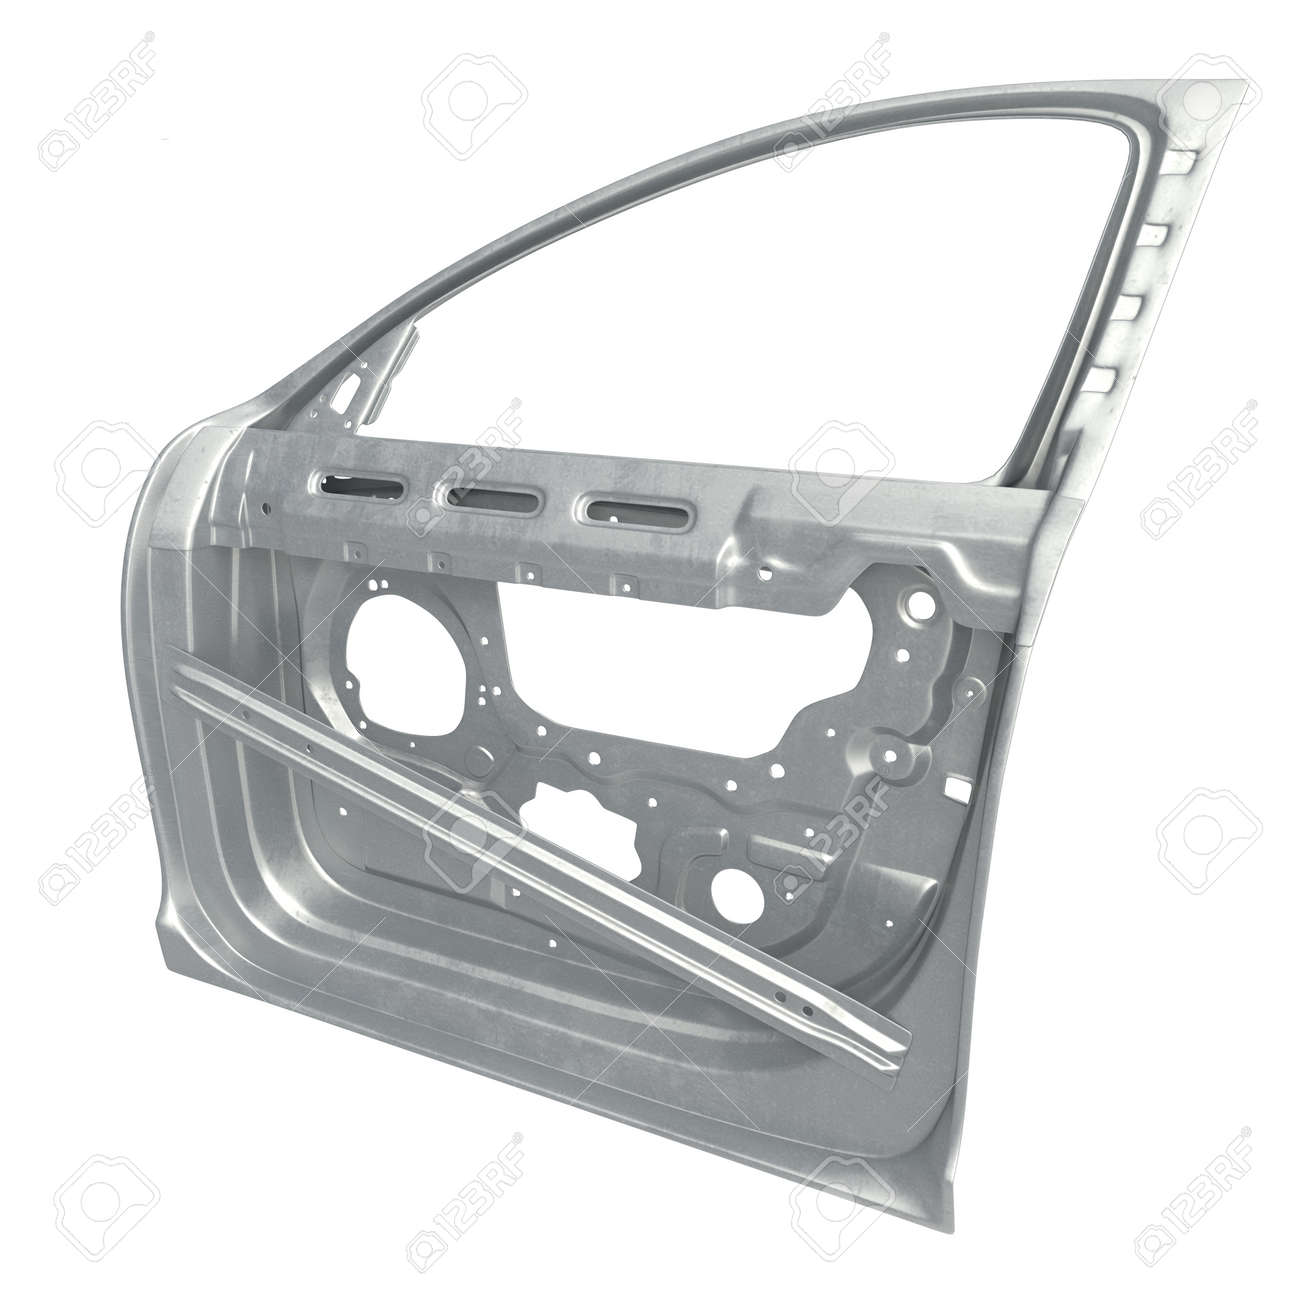 Car Door Frame On White Background. 3D Illustration Stock Photo ...